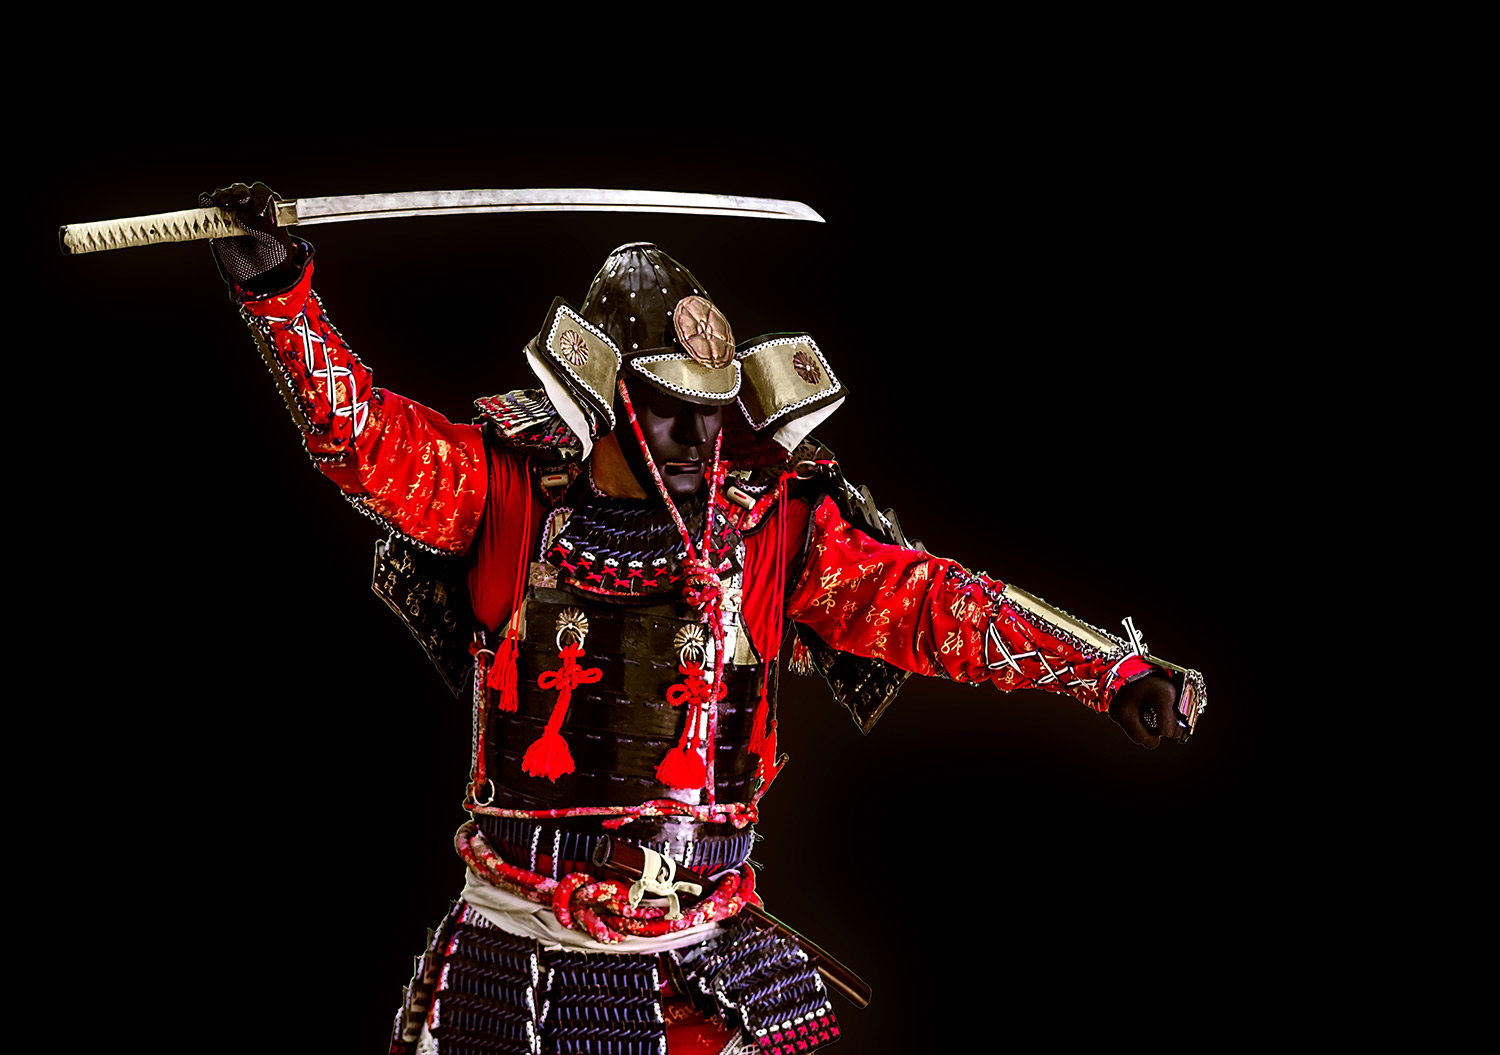 BUSHIDO JAPANESE SAMURAI CODE OF HONOUR